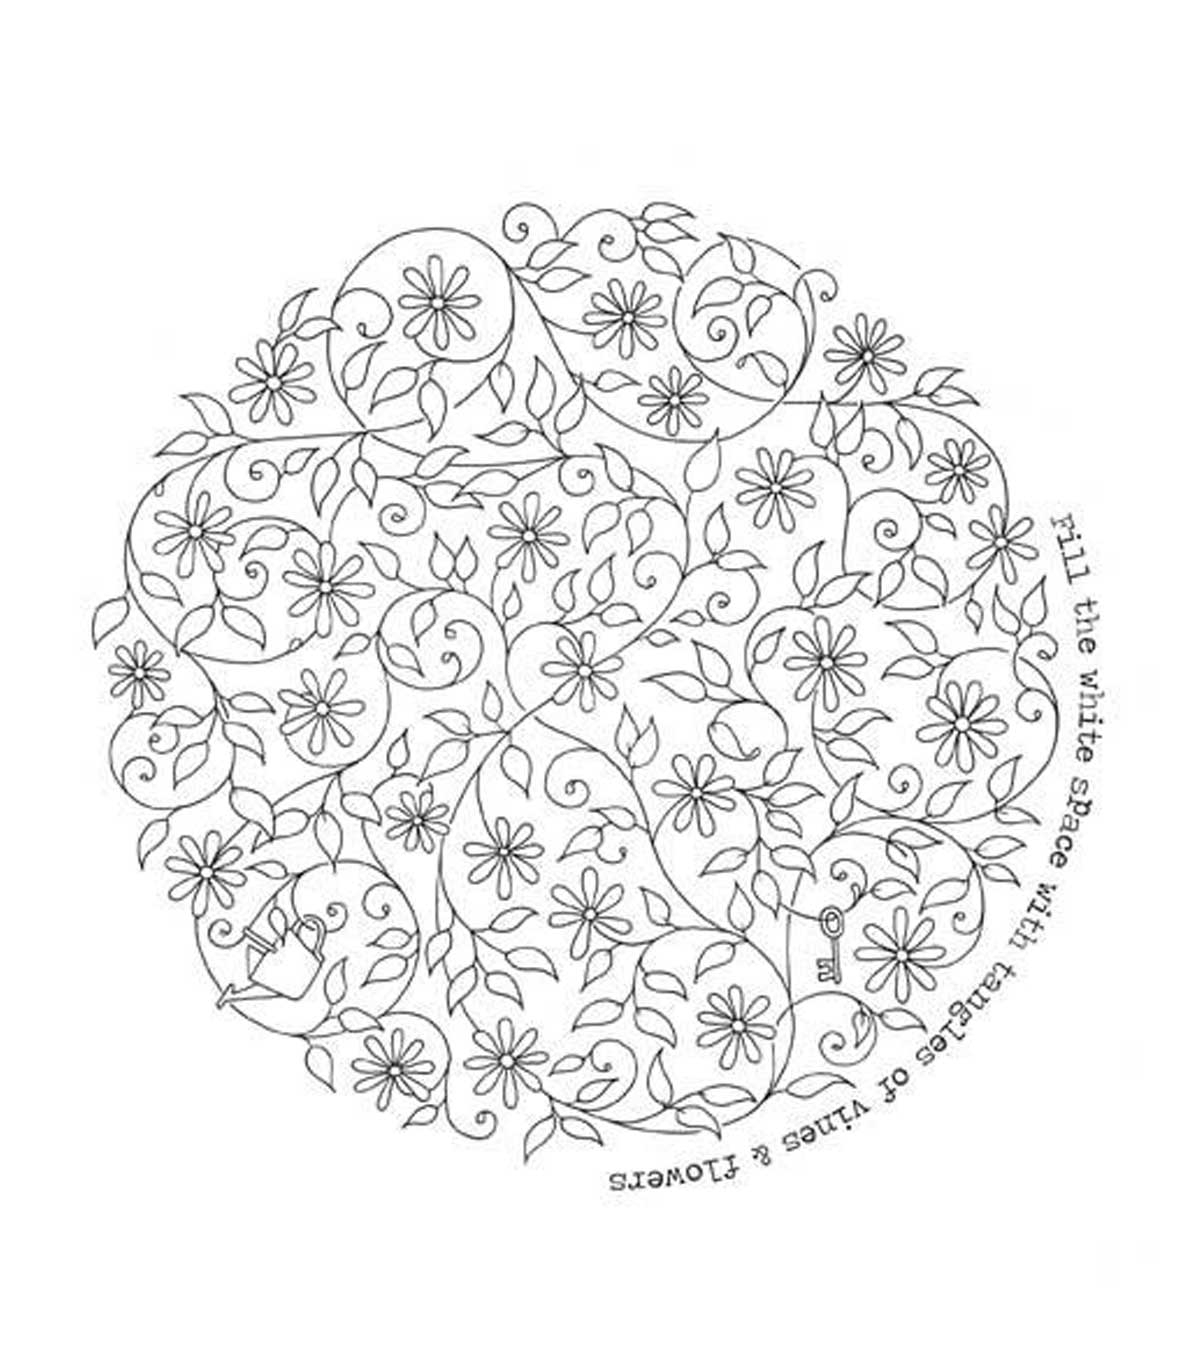 secret garden coloring pages - secret garden coloring book heart sketch templates